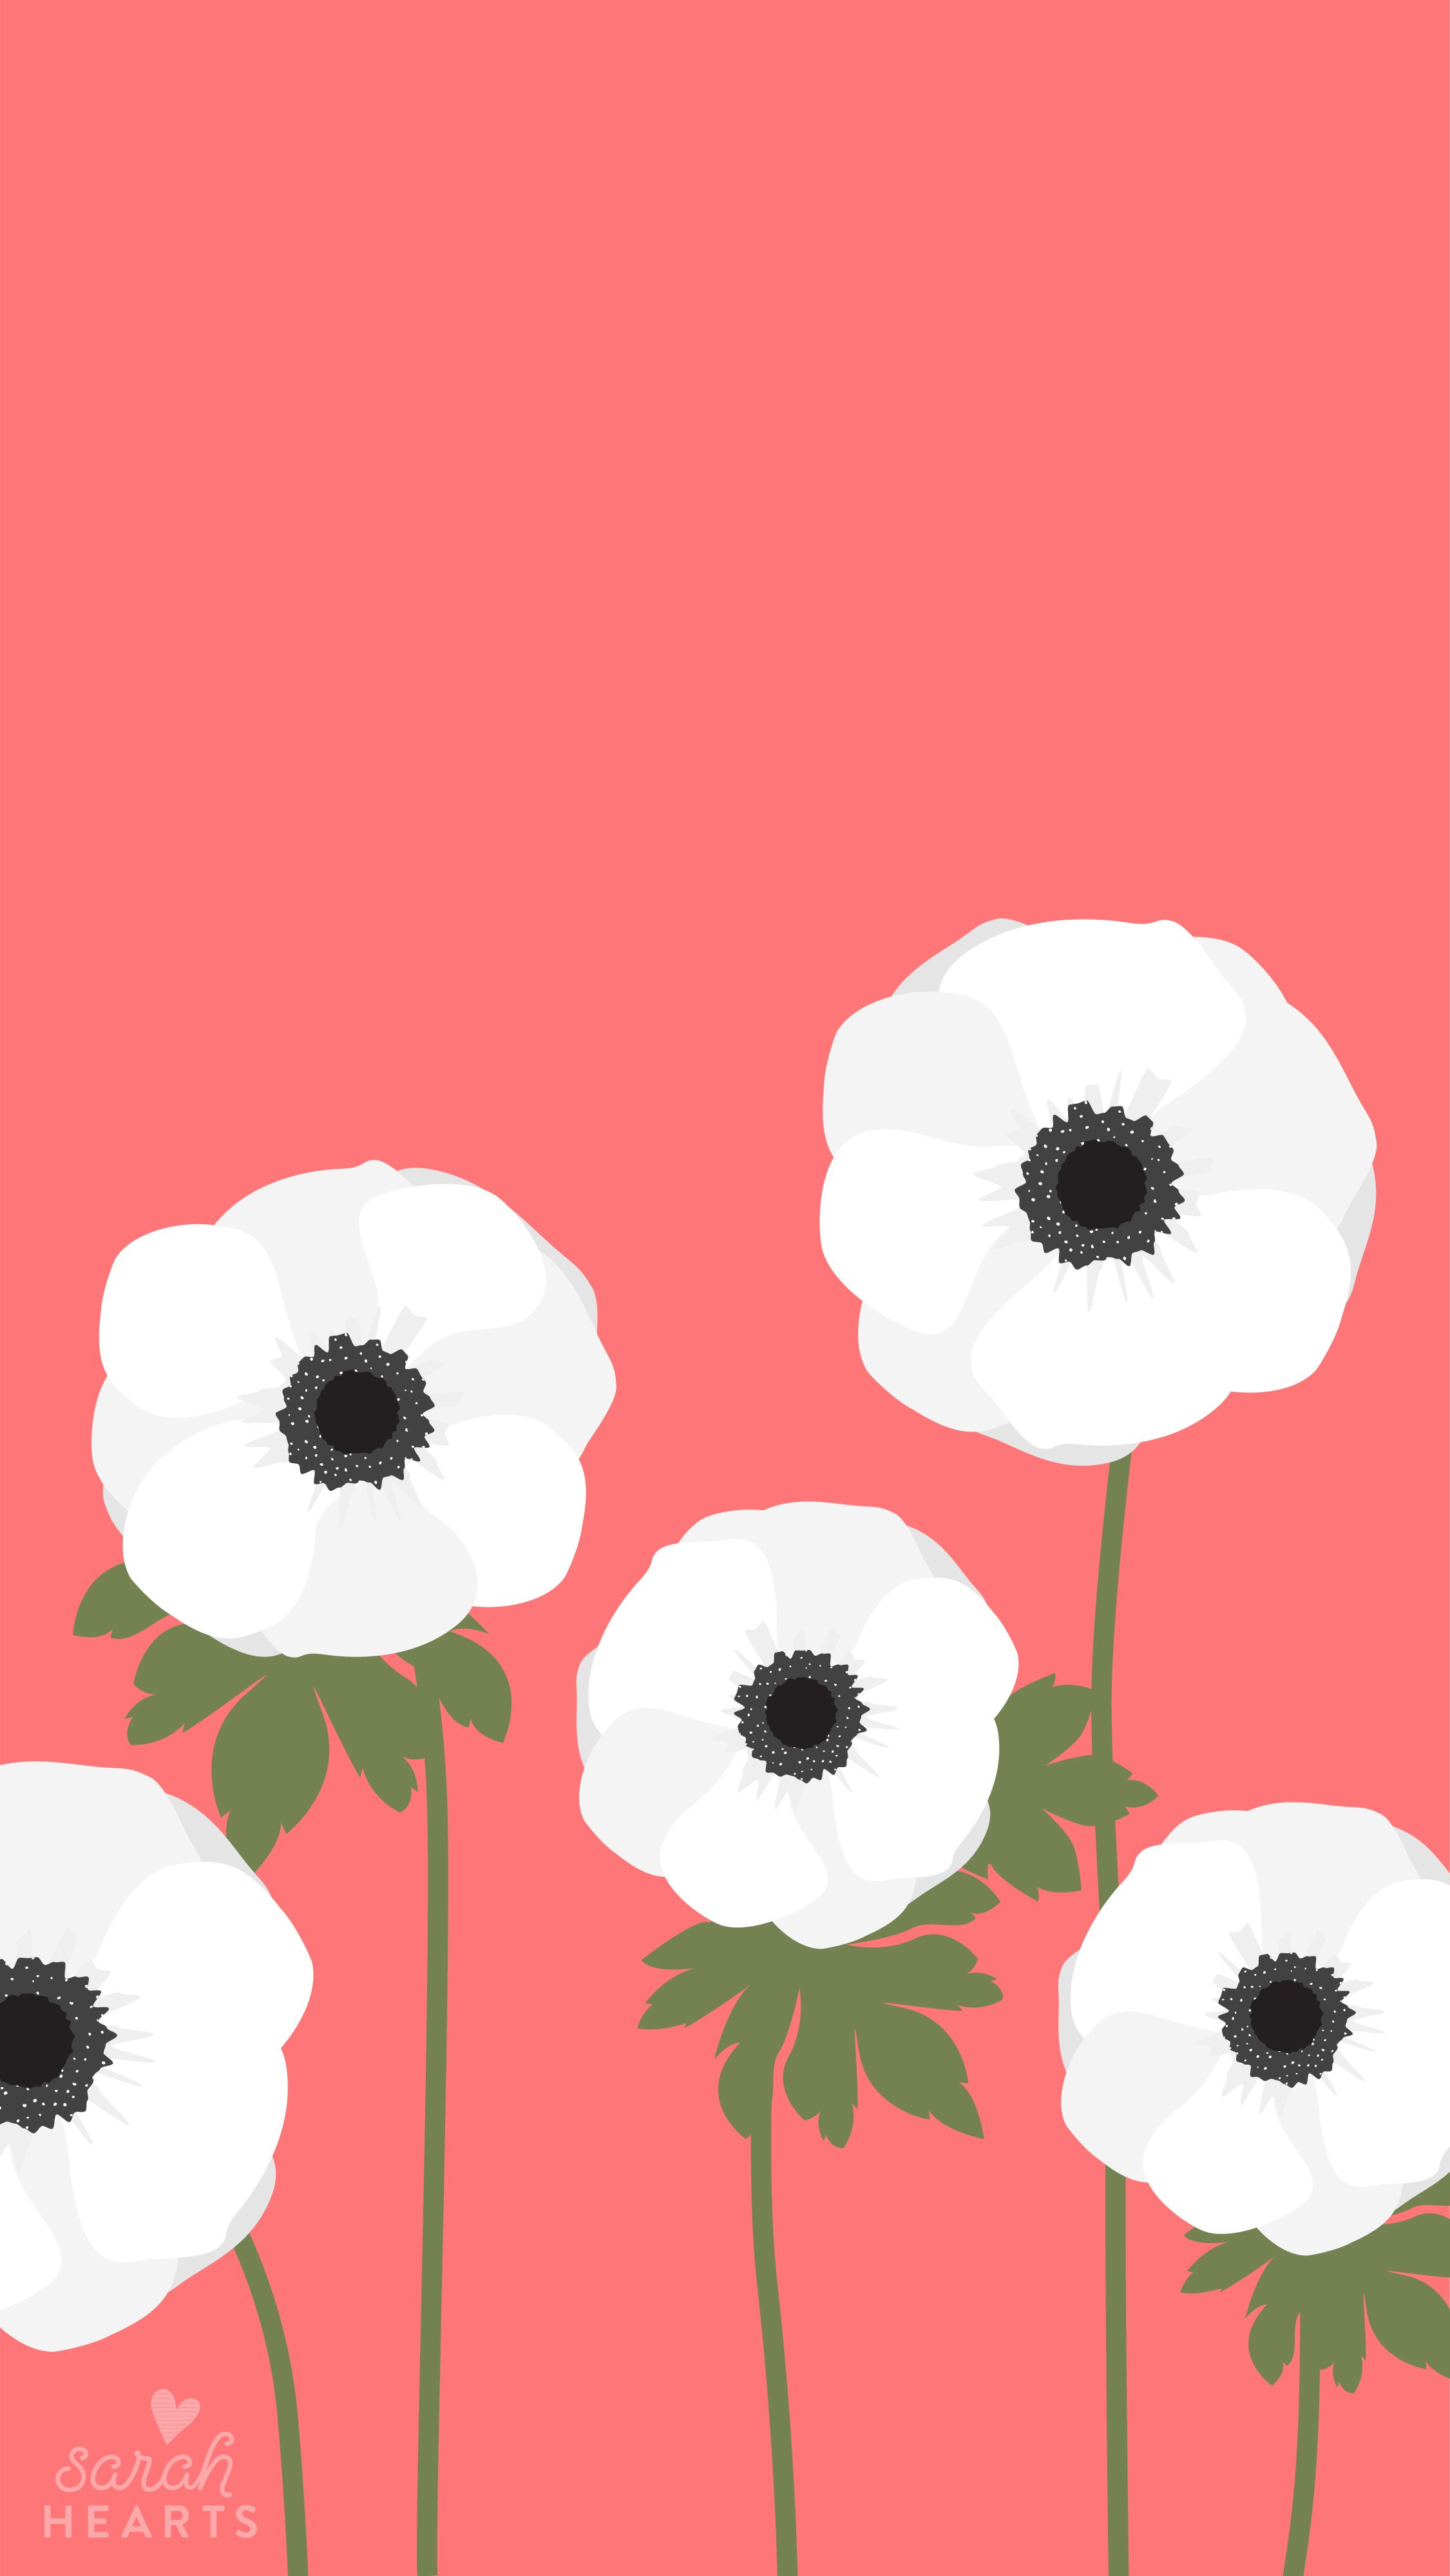 Fr fr free january 2017 desktop wallpaper - Get Ready For Spring With This Beautiful White Anemone Wallpaper Available For Phones Tablets